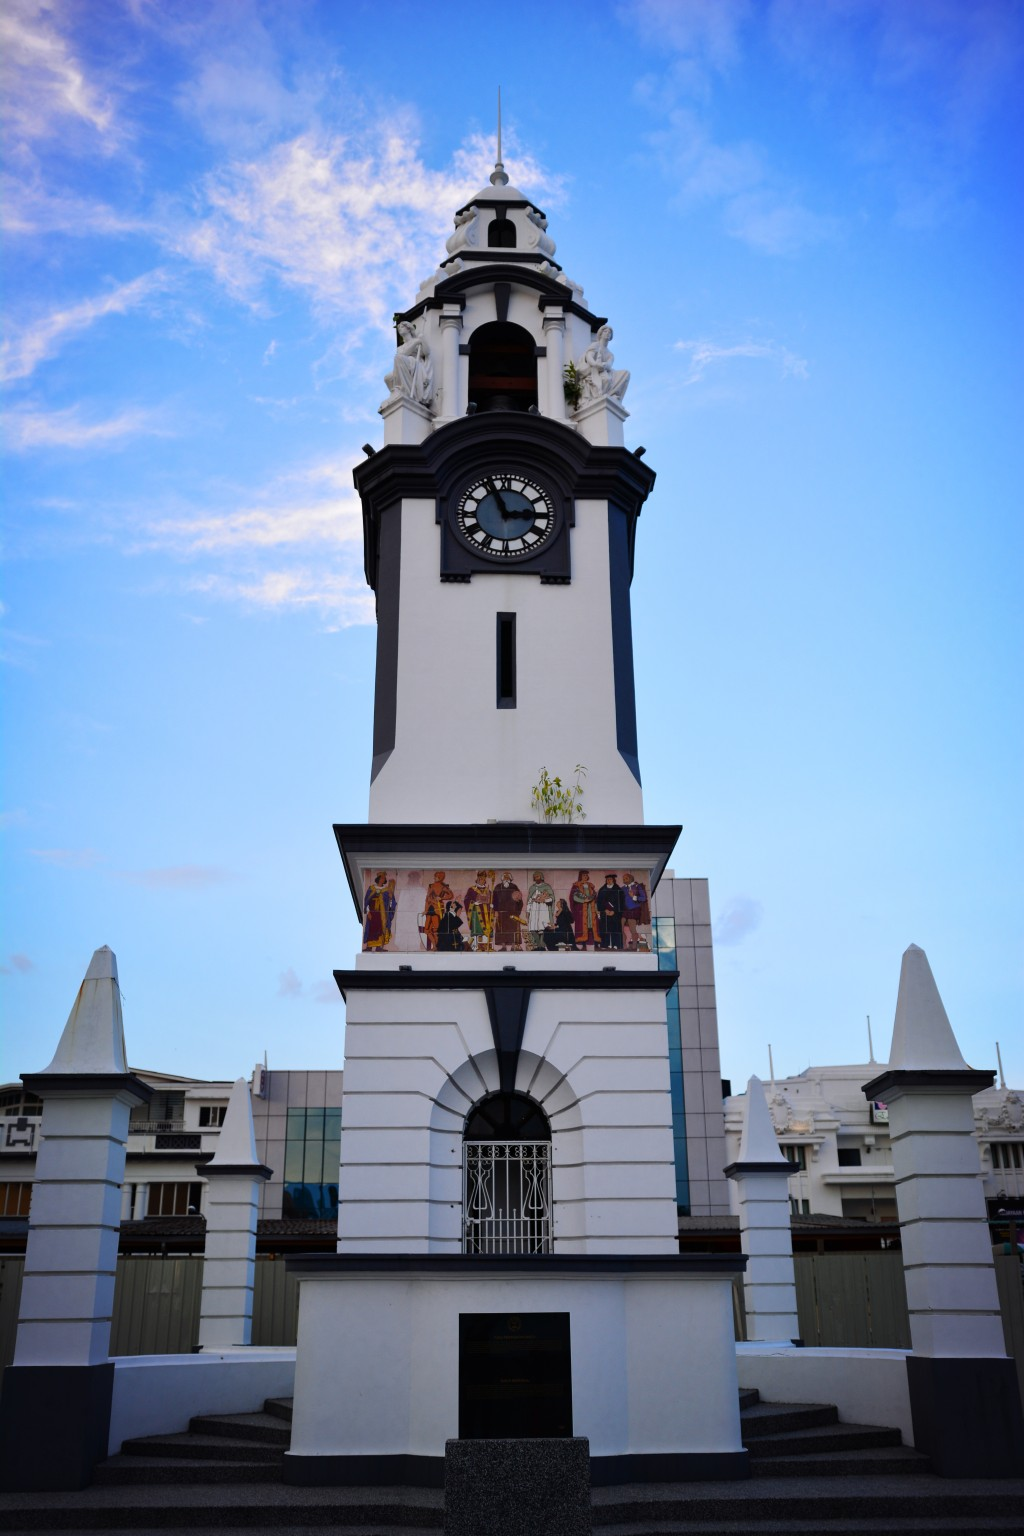 Birch Tower, dedicated to the first British resident of Perak